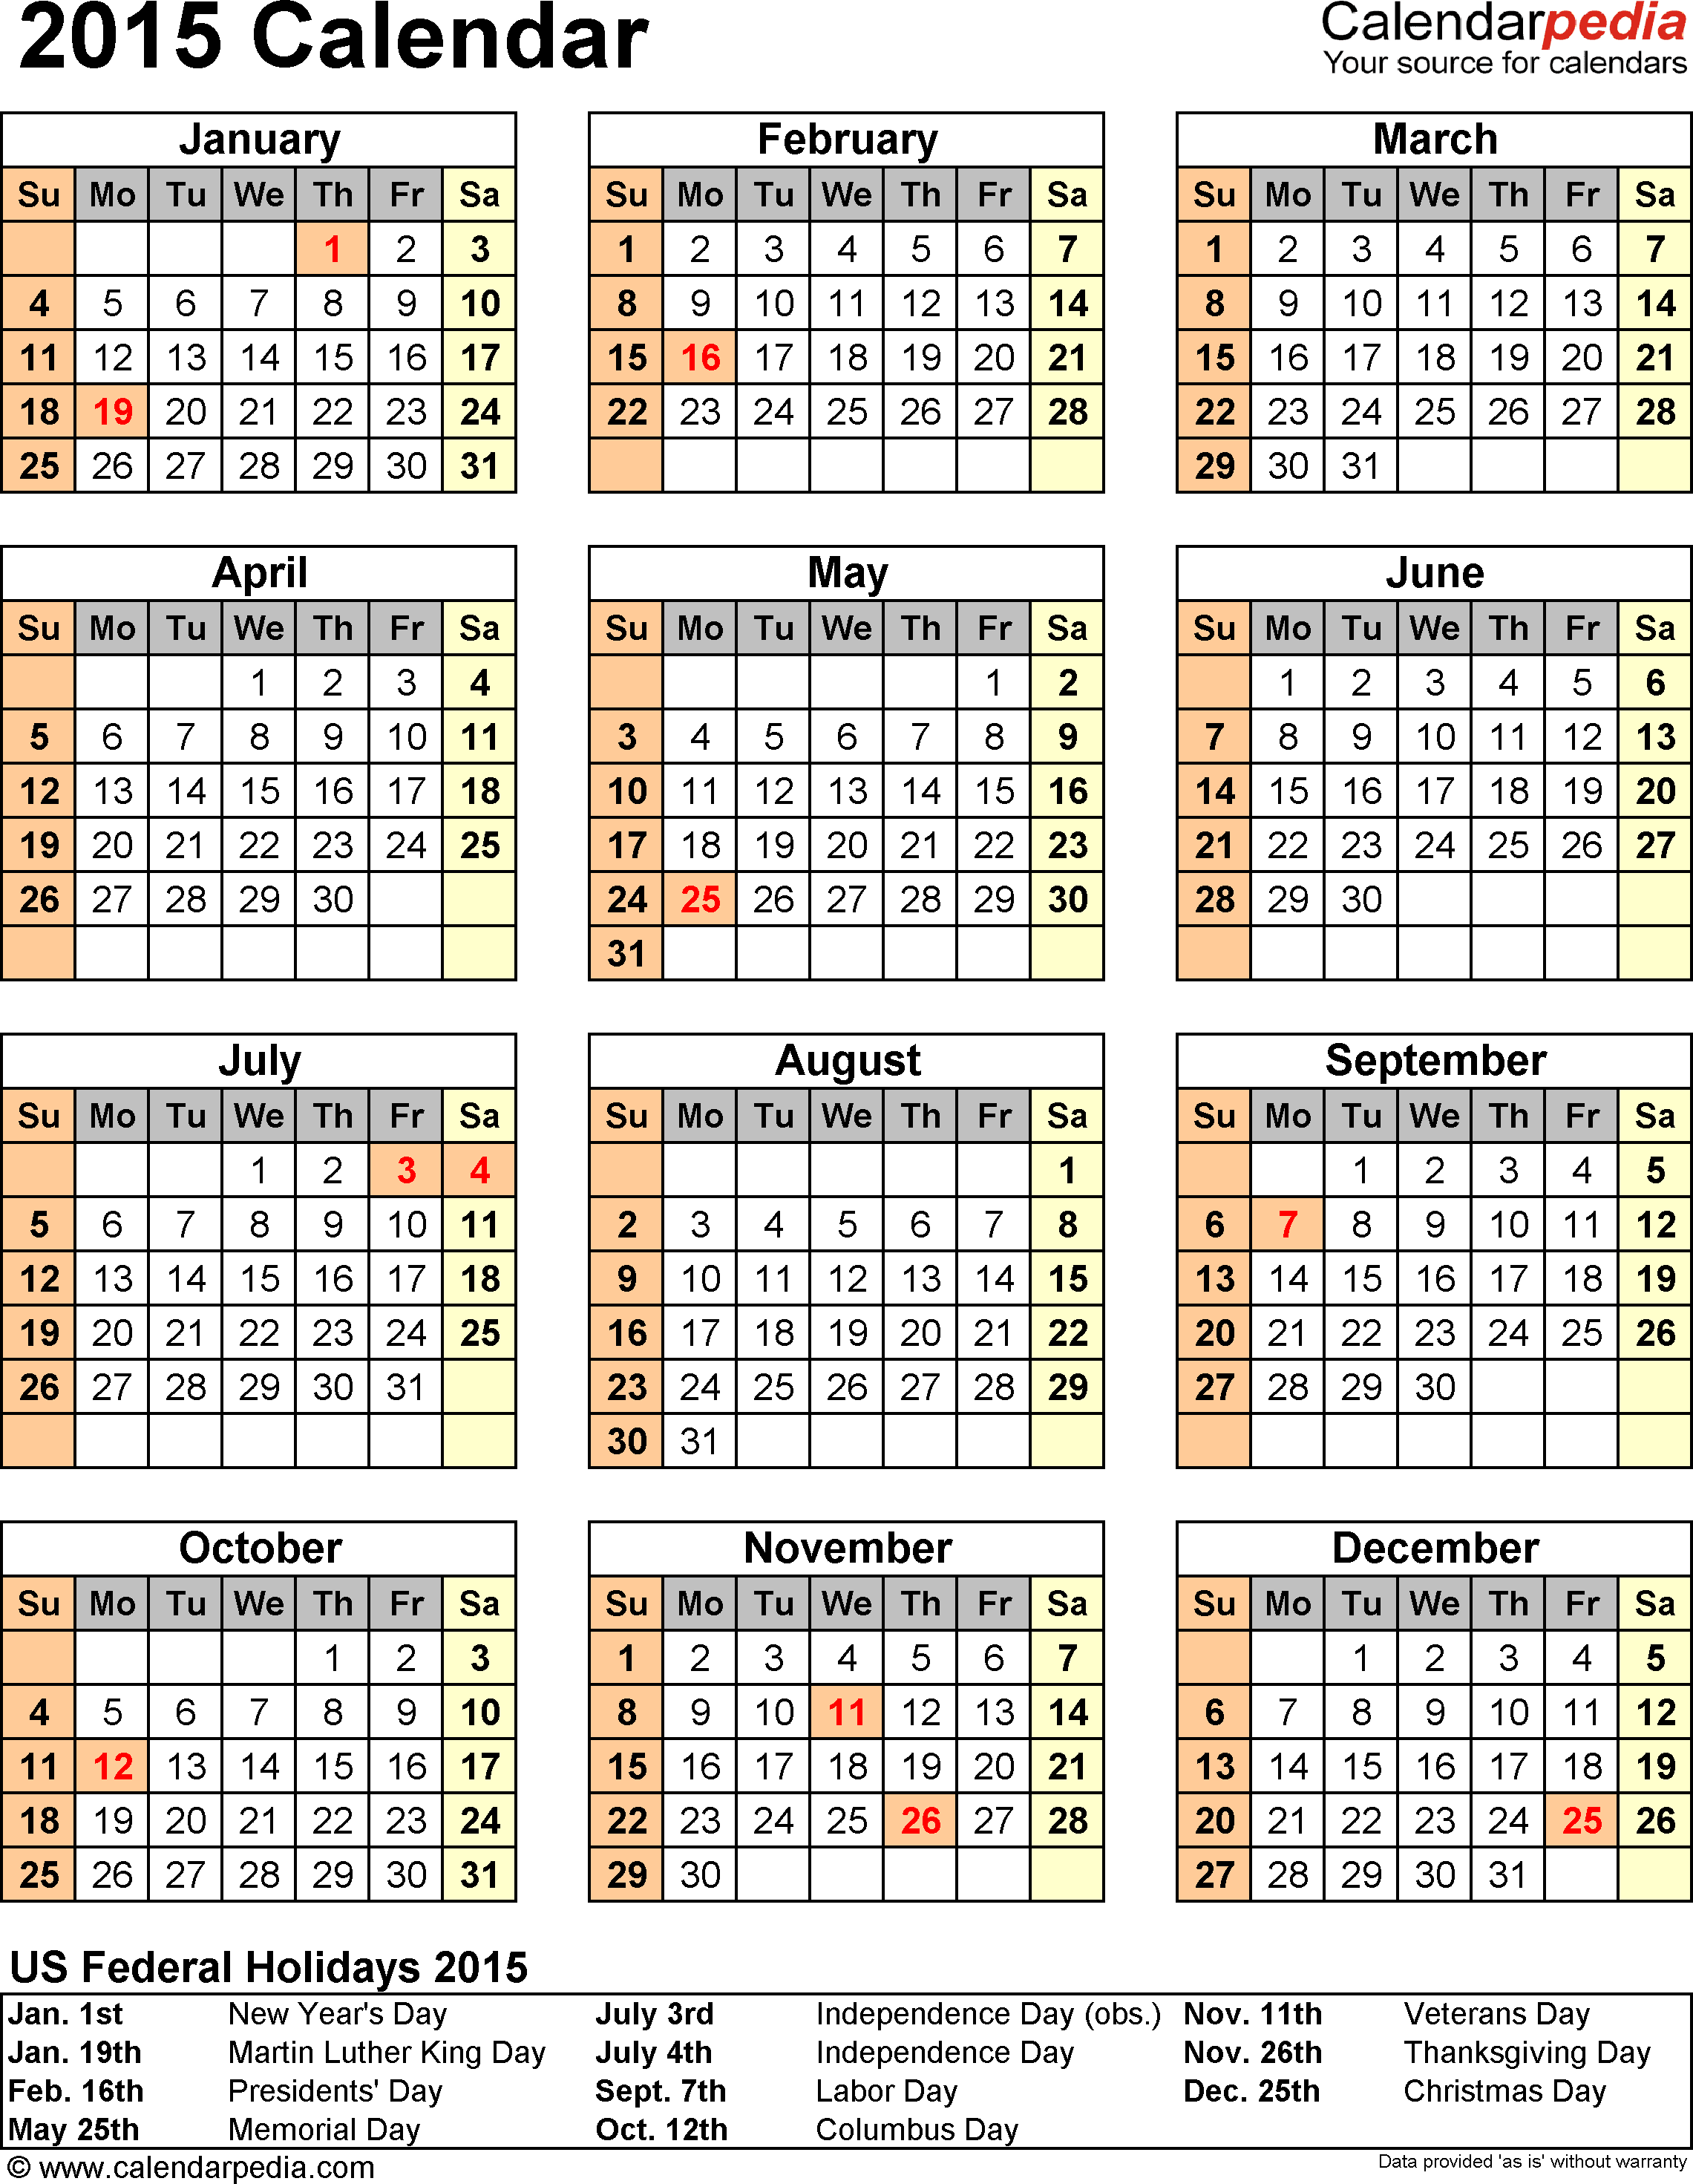 Download Word template for 2015 calendar template 11: Calendar 2015 as Word template, portrait orientation, 1 page, with US federal holidays 2015, paper format: US letter